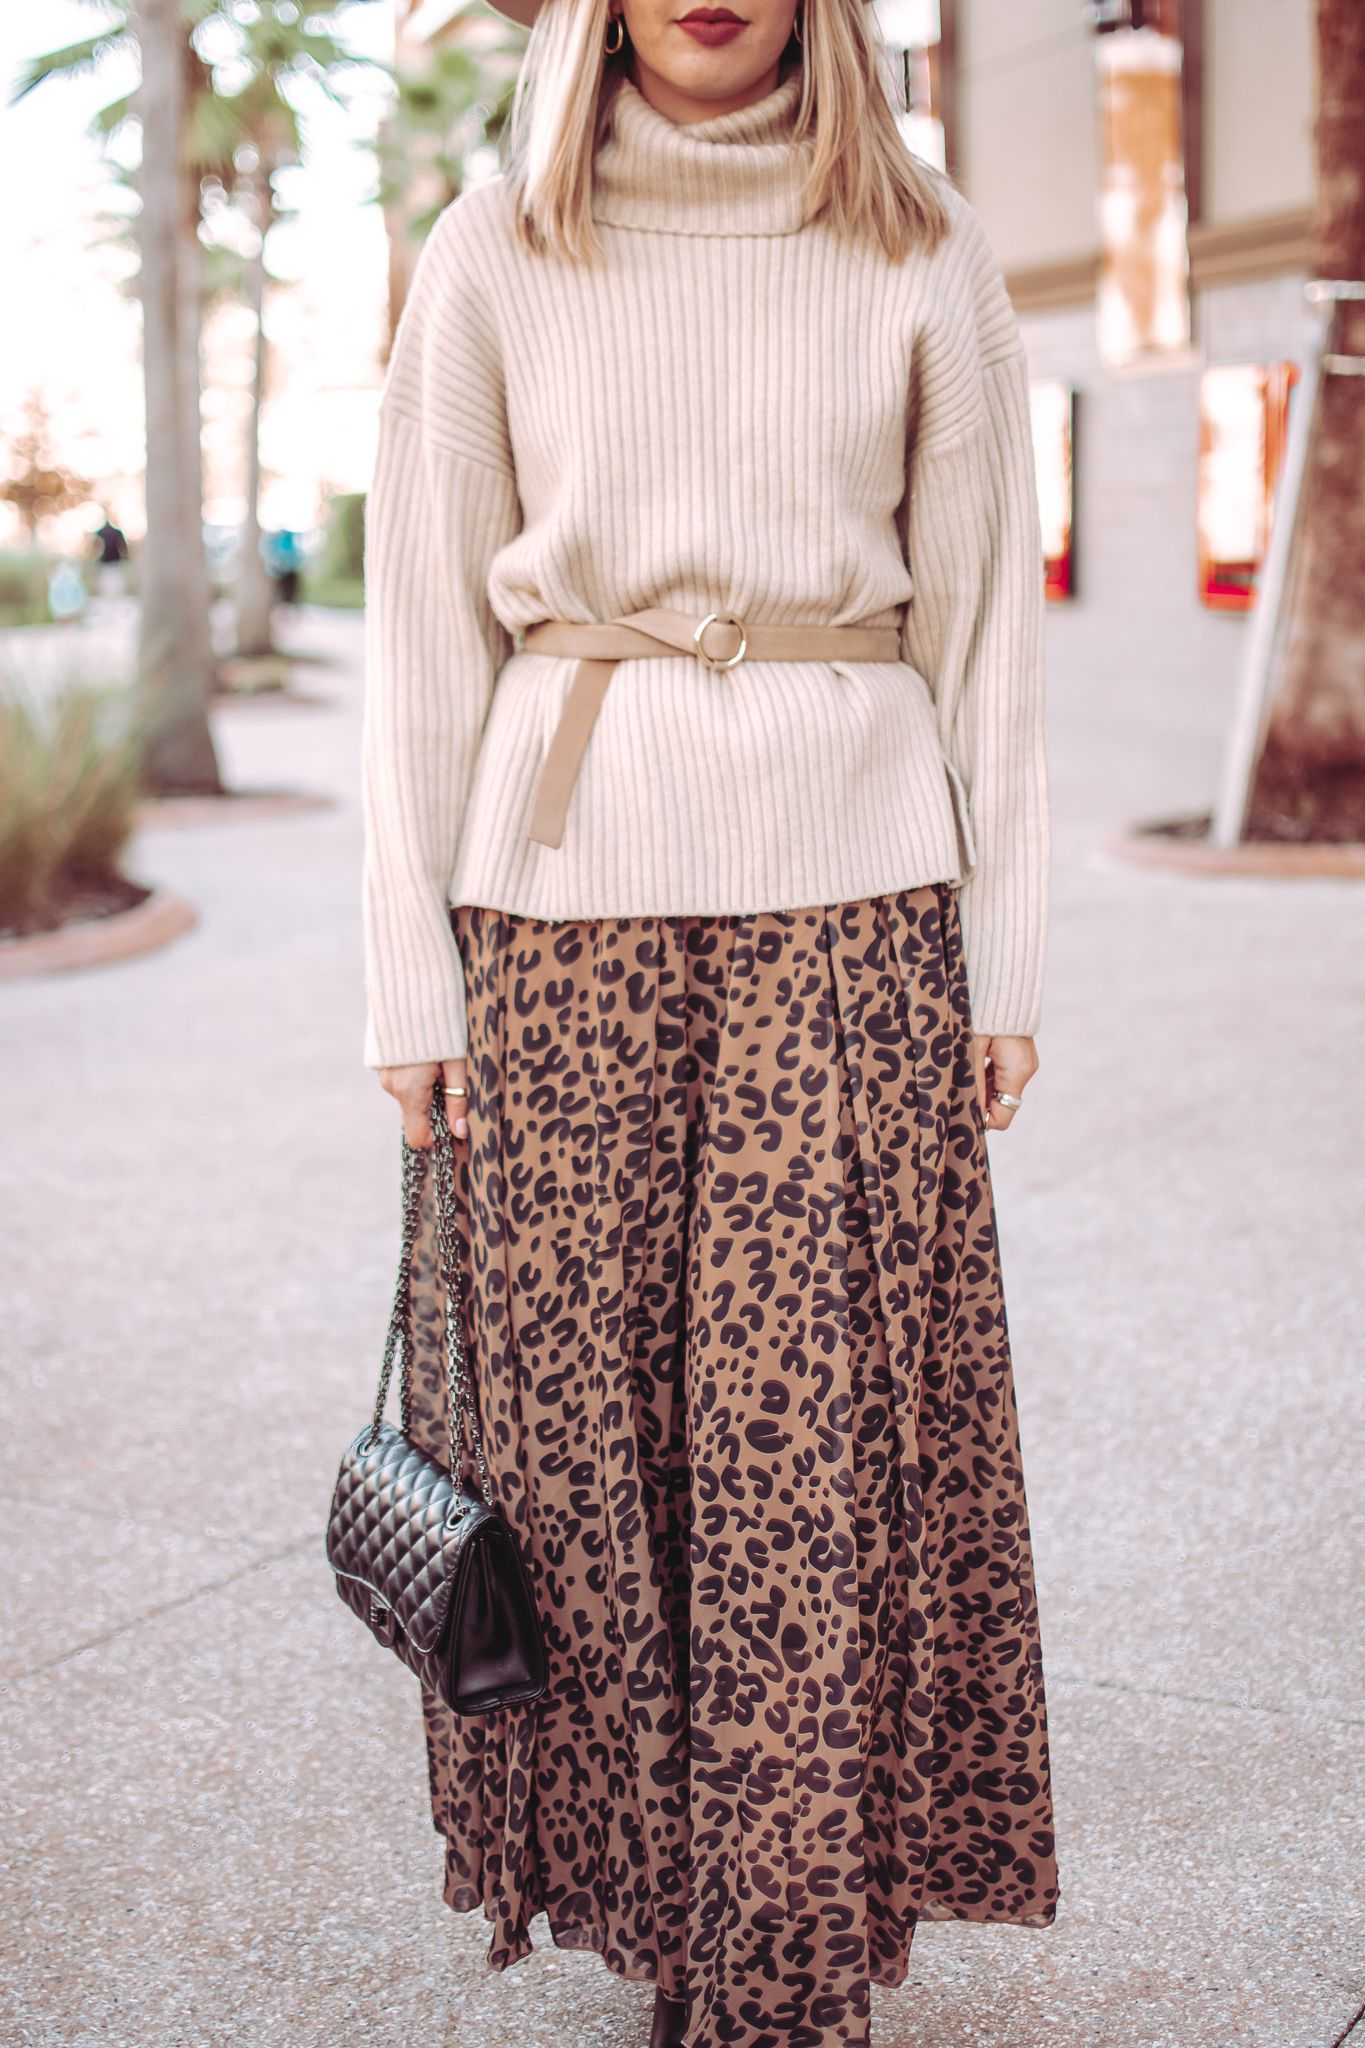 Boho Chic Outfit Printed Maxi Skirts Boho Chic Outfits Chic Fall Outfits [ 2048 x 1365 Pixel ]